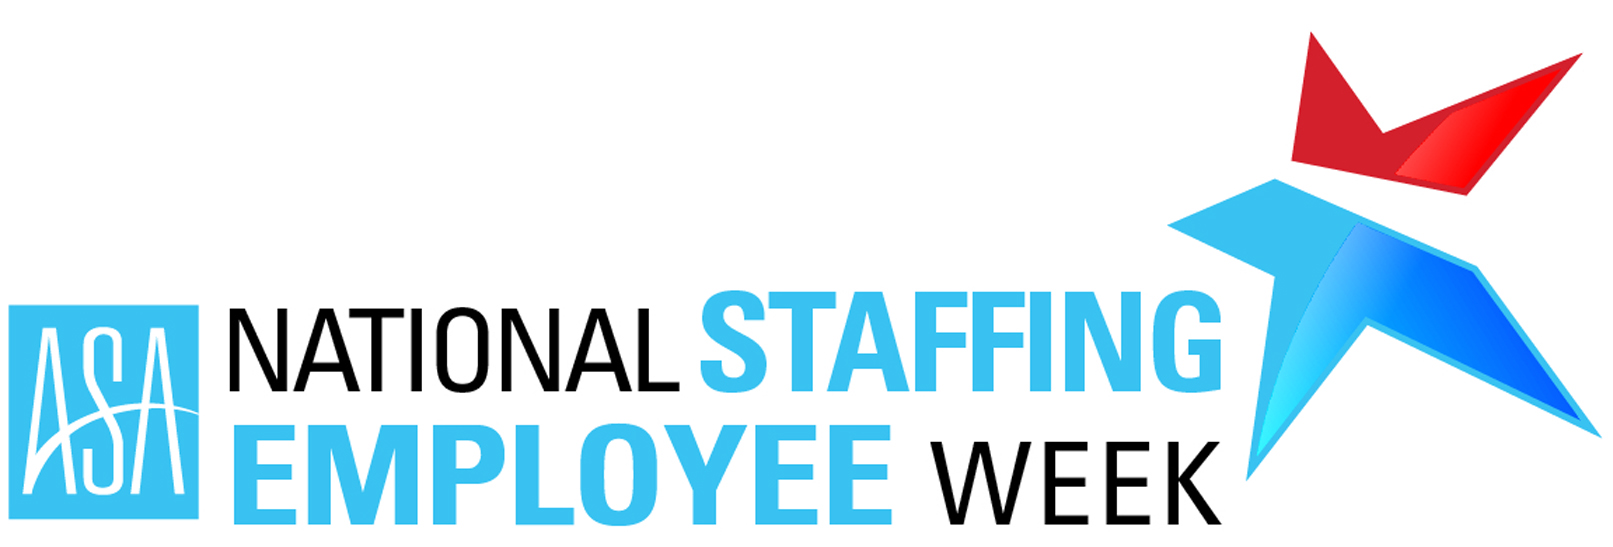 2017-National-Staffing-Employee-Week-American-Staffing-Association-1.jpg